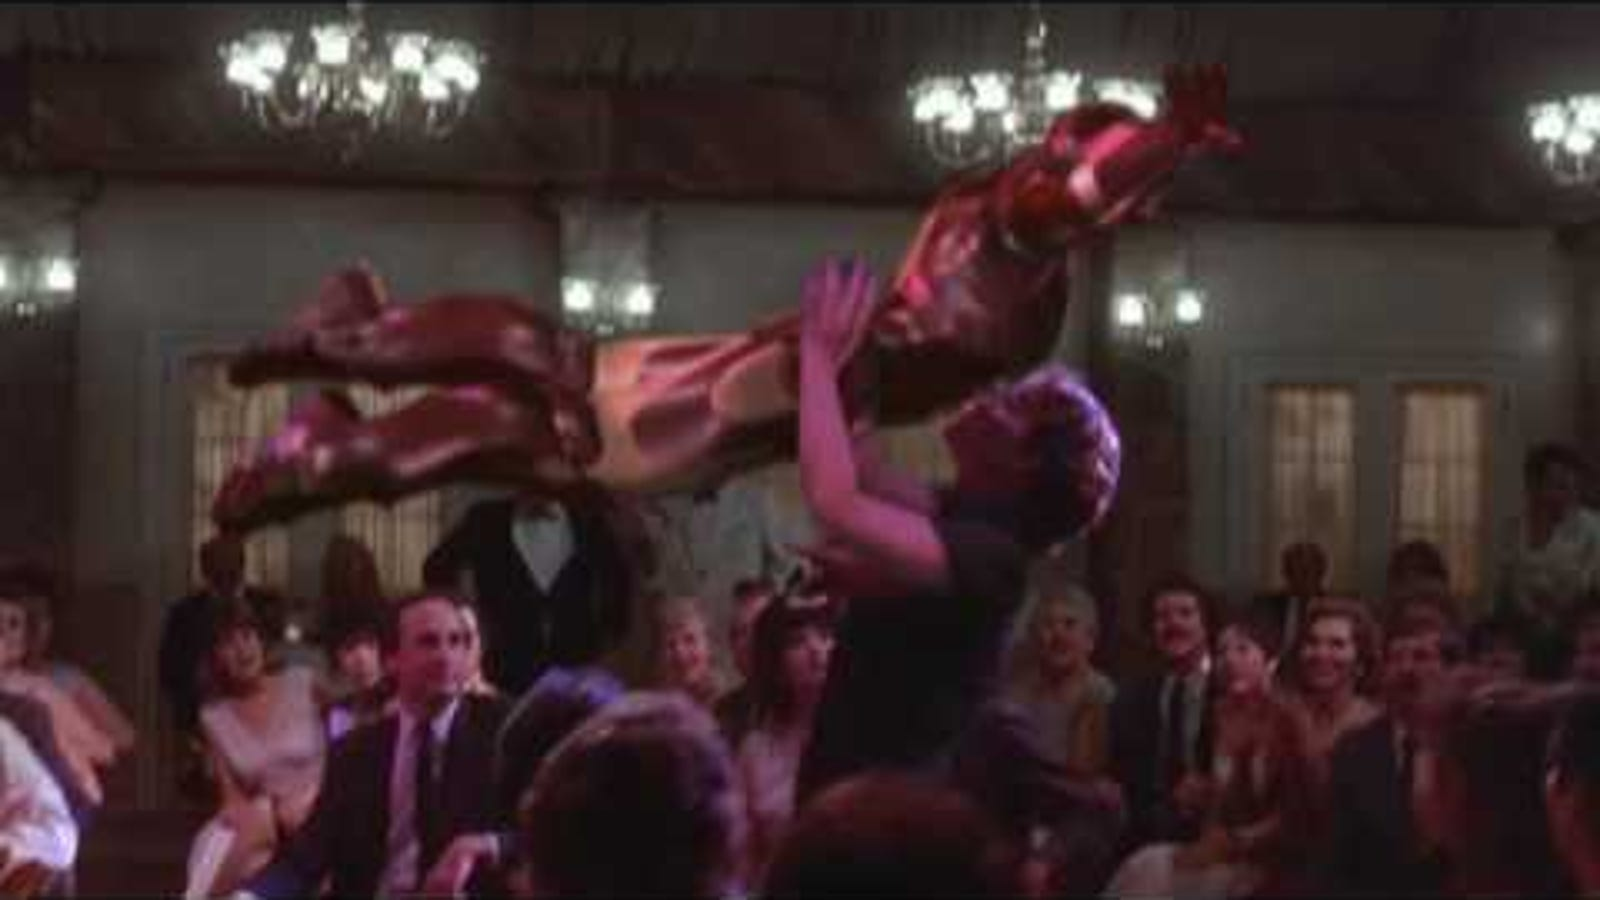 Iron Man + Dirty Dancing = Awesome? Or a Waste of ...